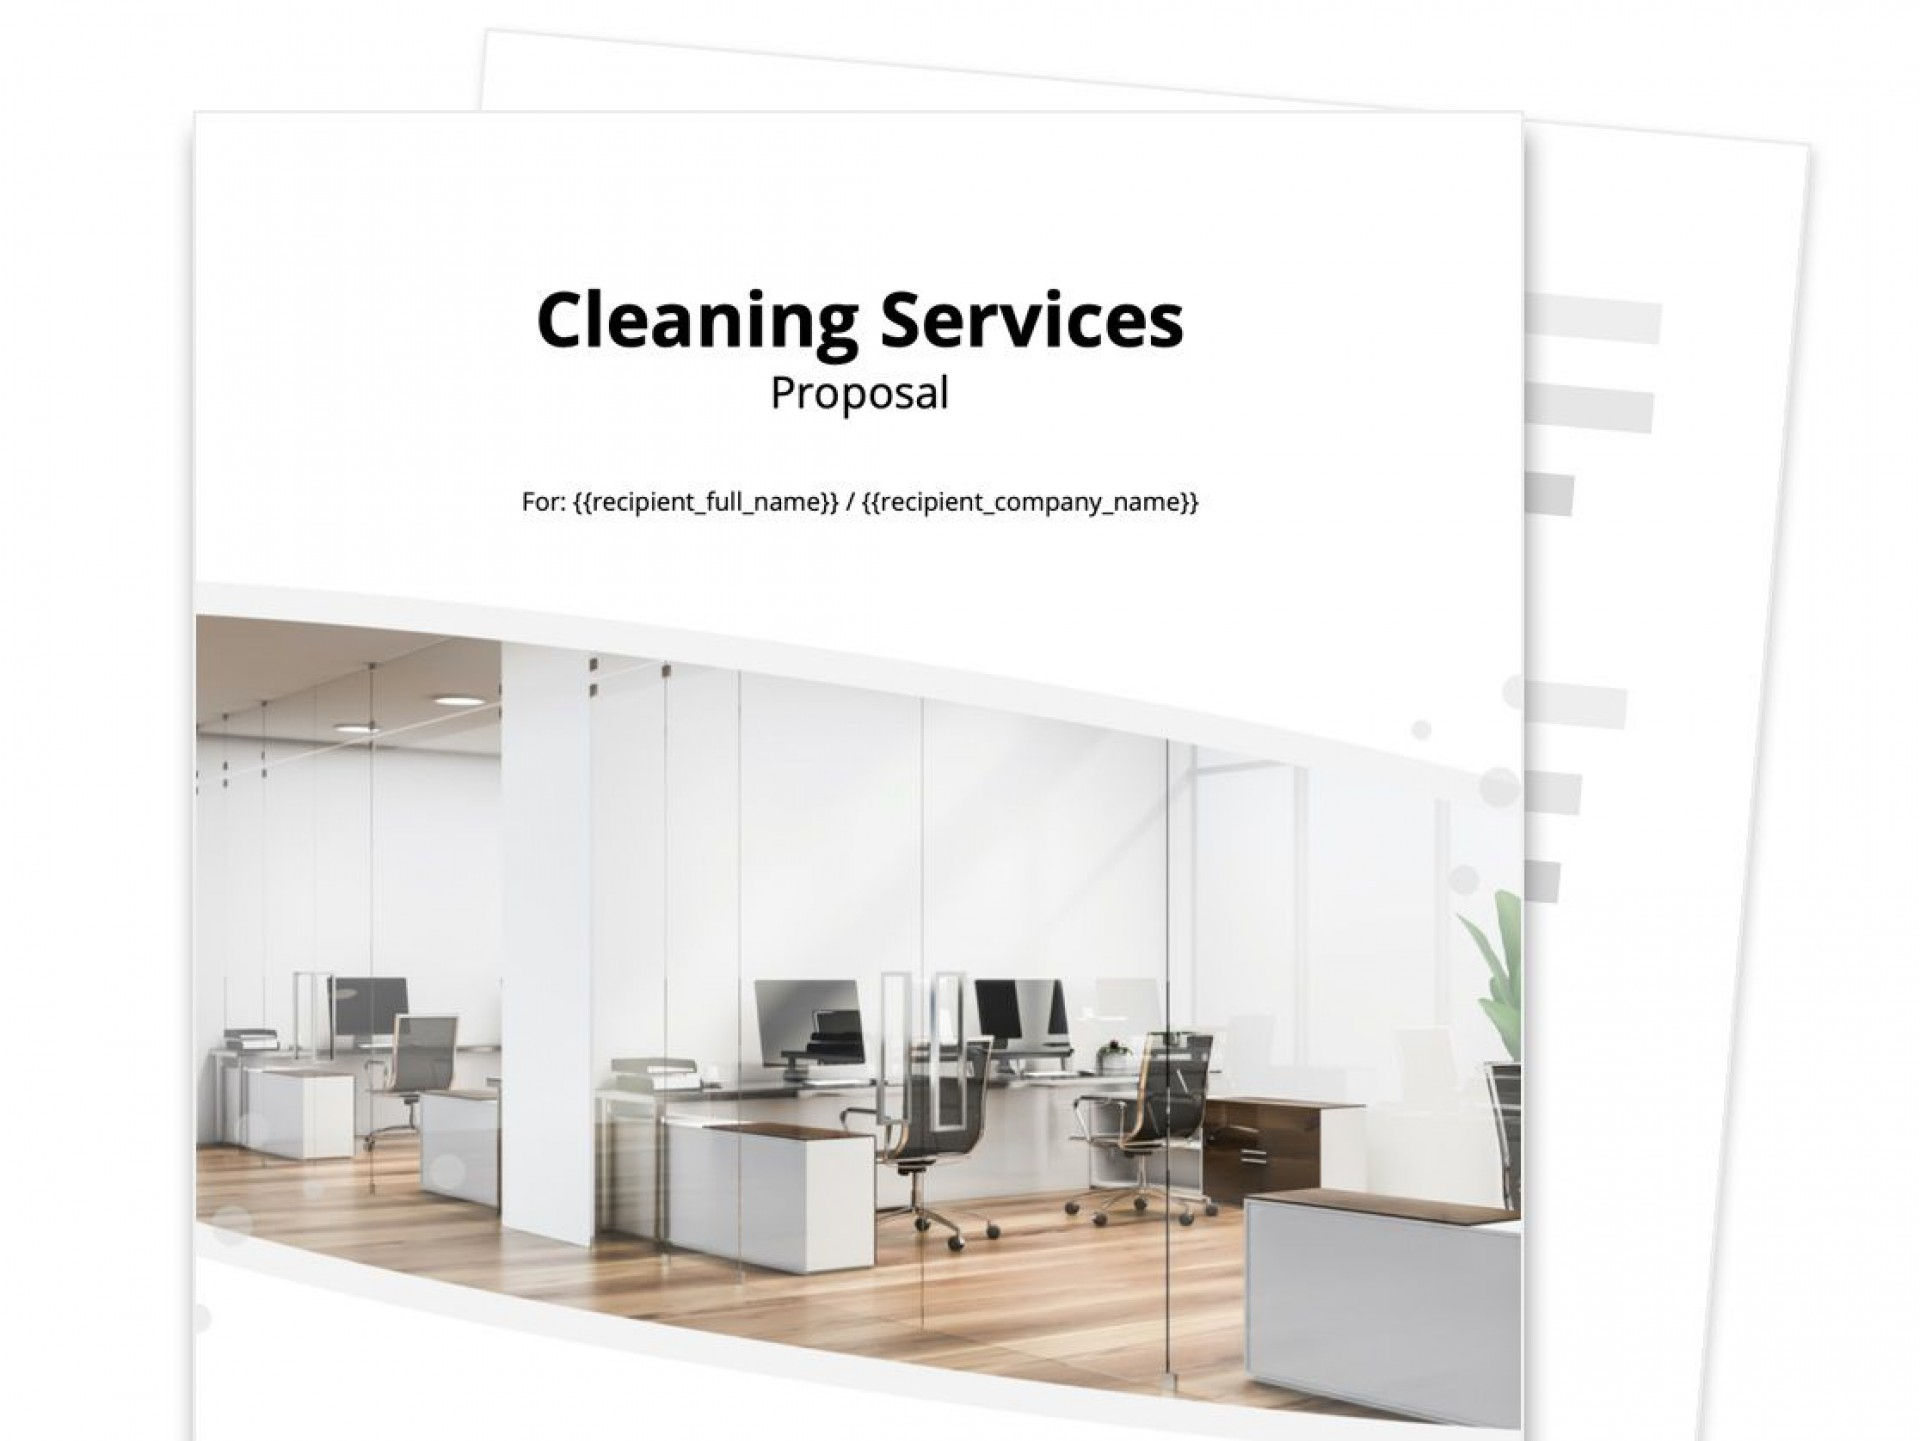 006 Stunning Free Cleaning Proposal Template Image  Pdf Word1920